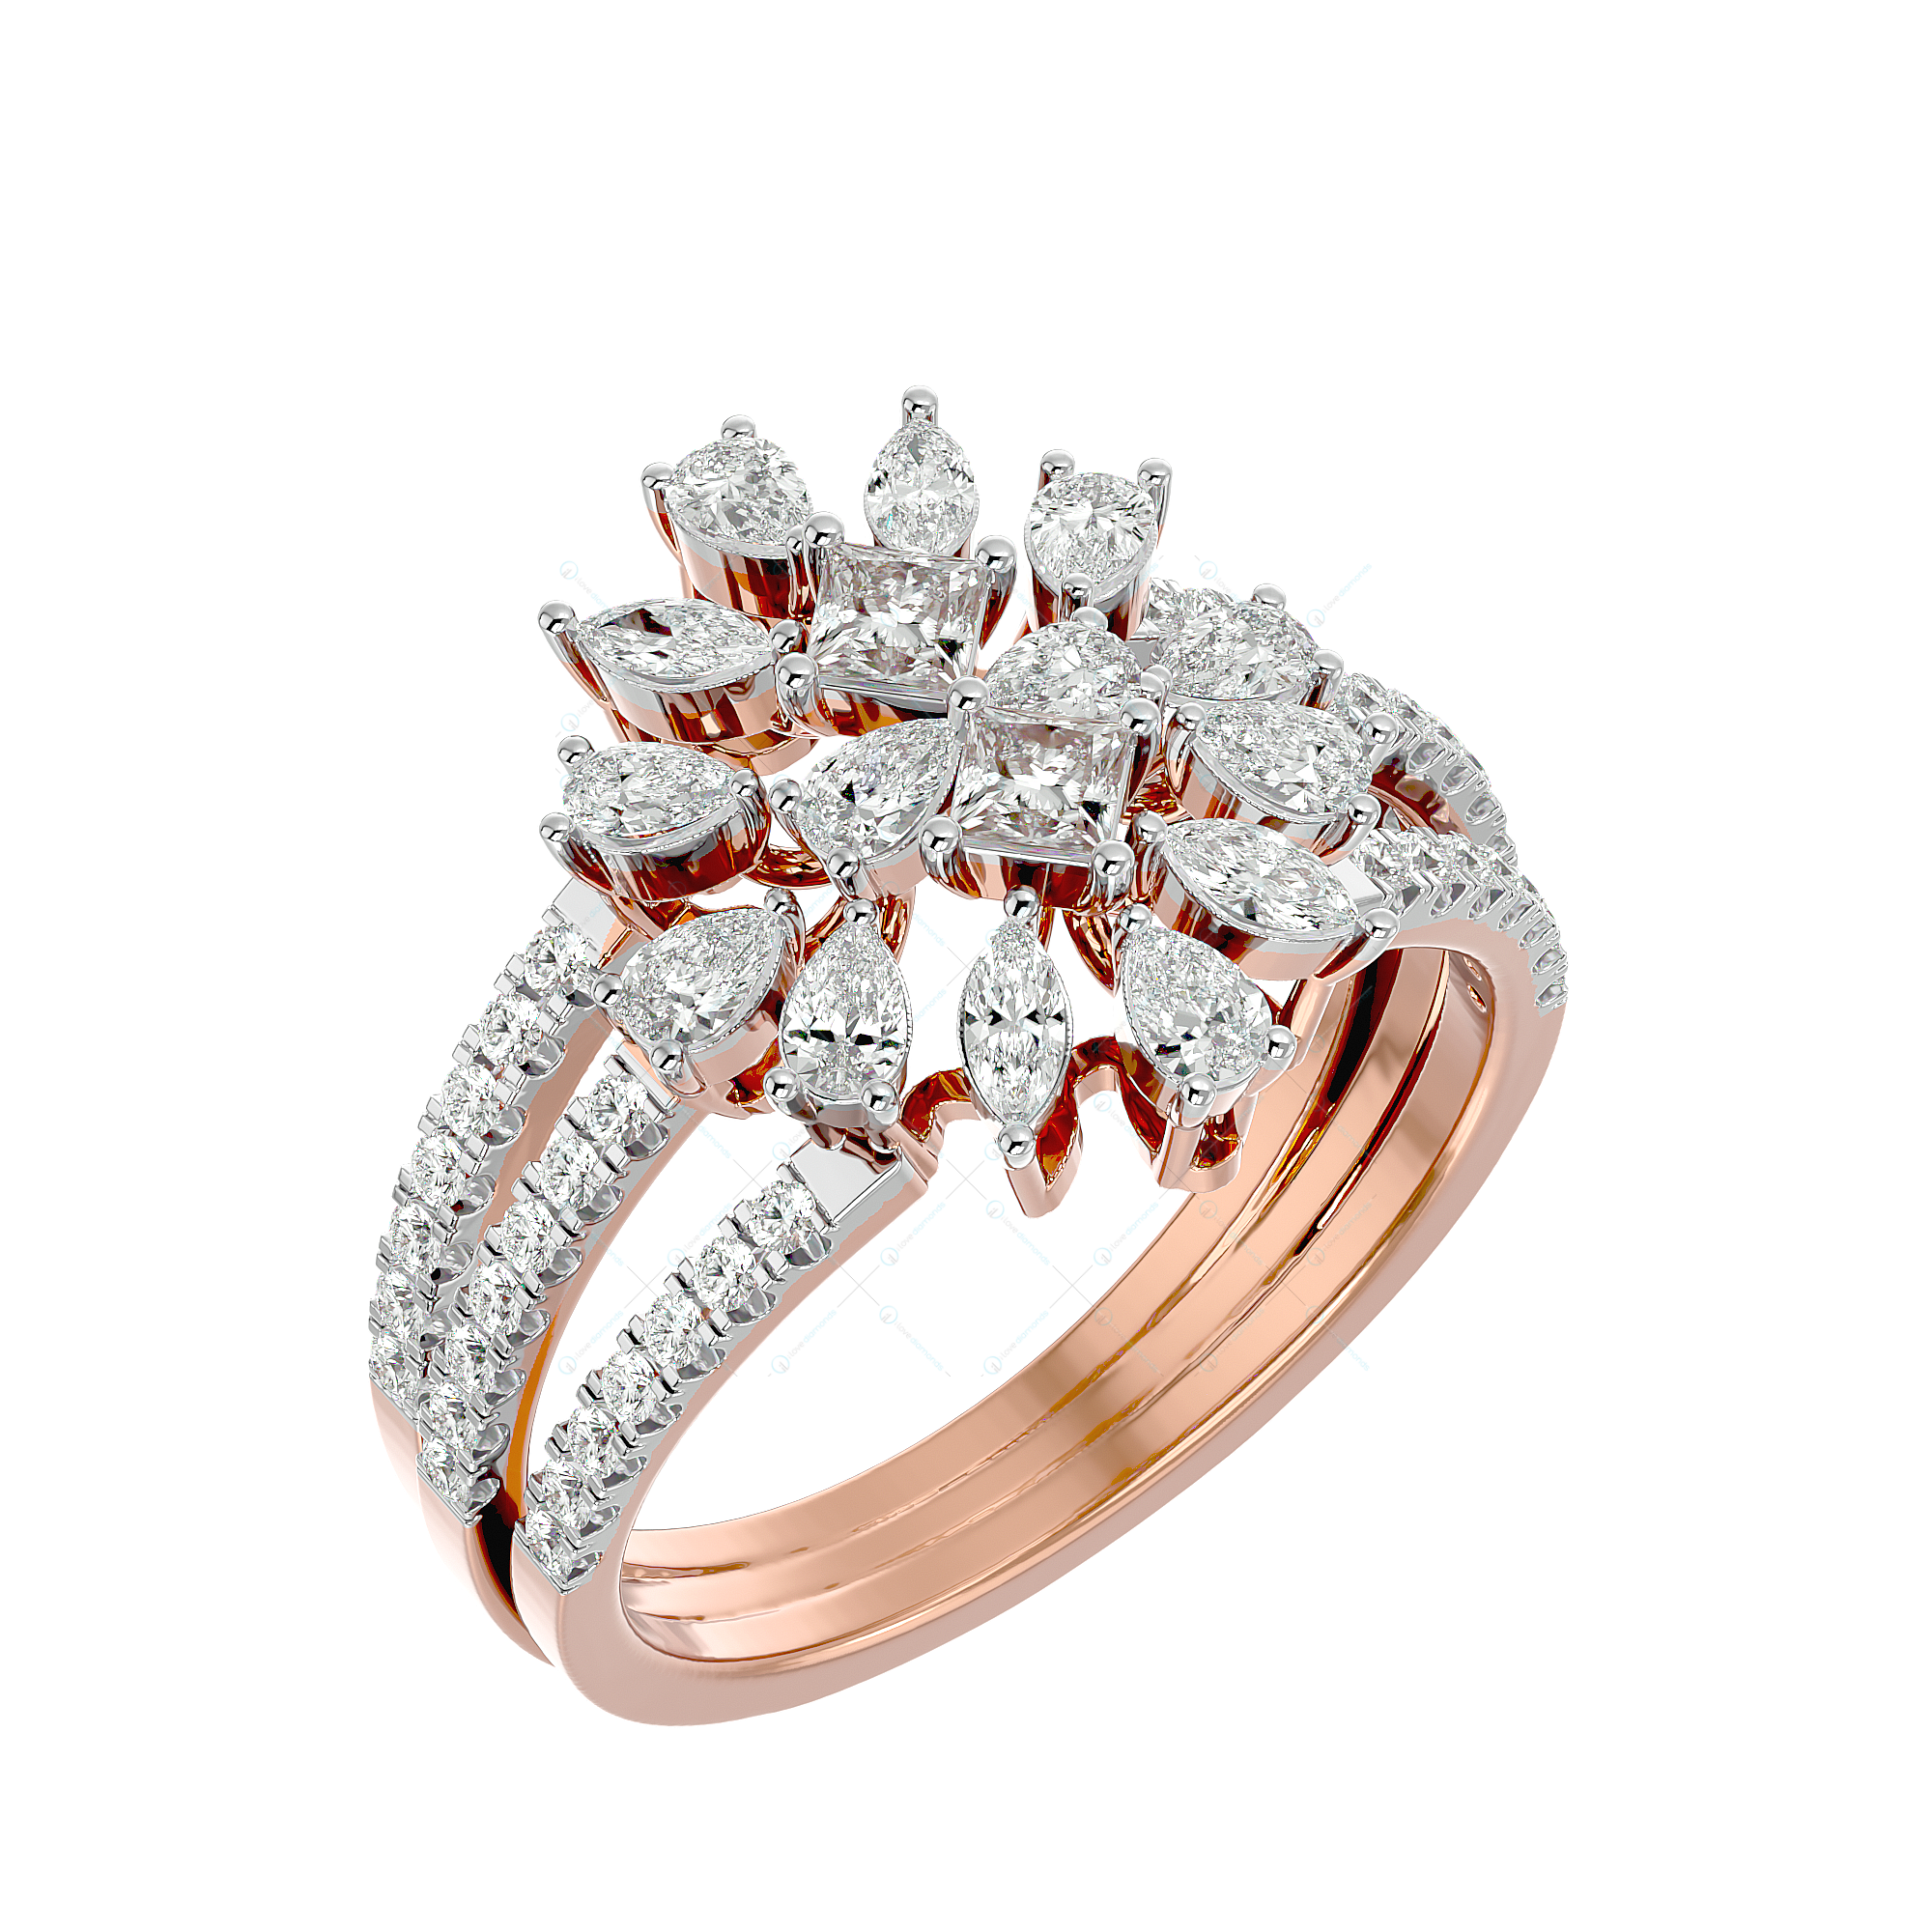 Heavenly Coruscations Diamond Ring In Yellow Gold For Women v1